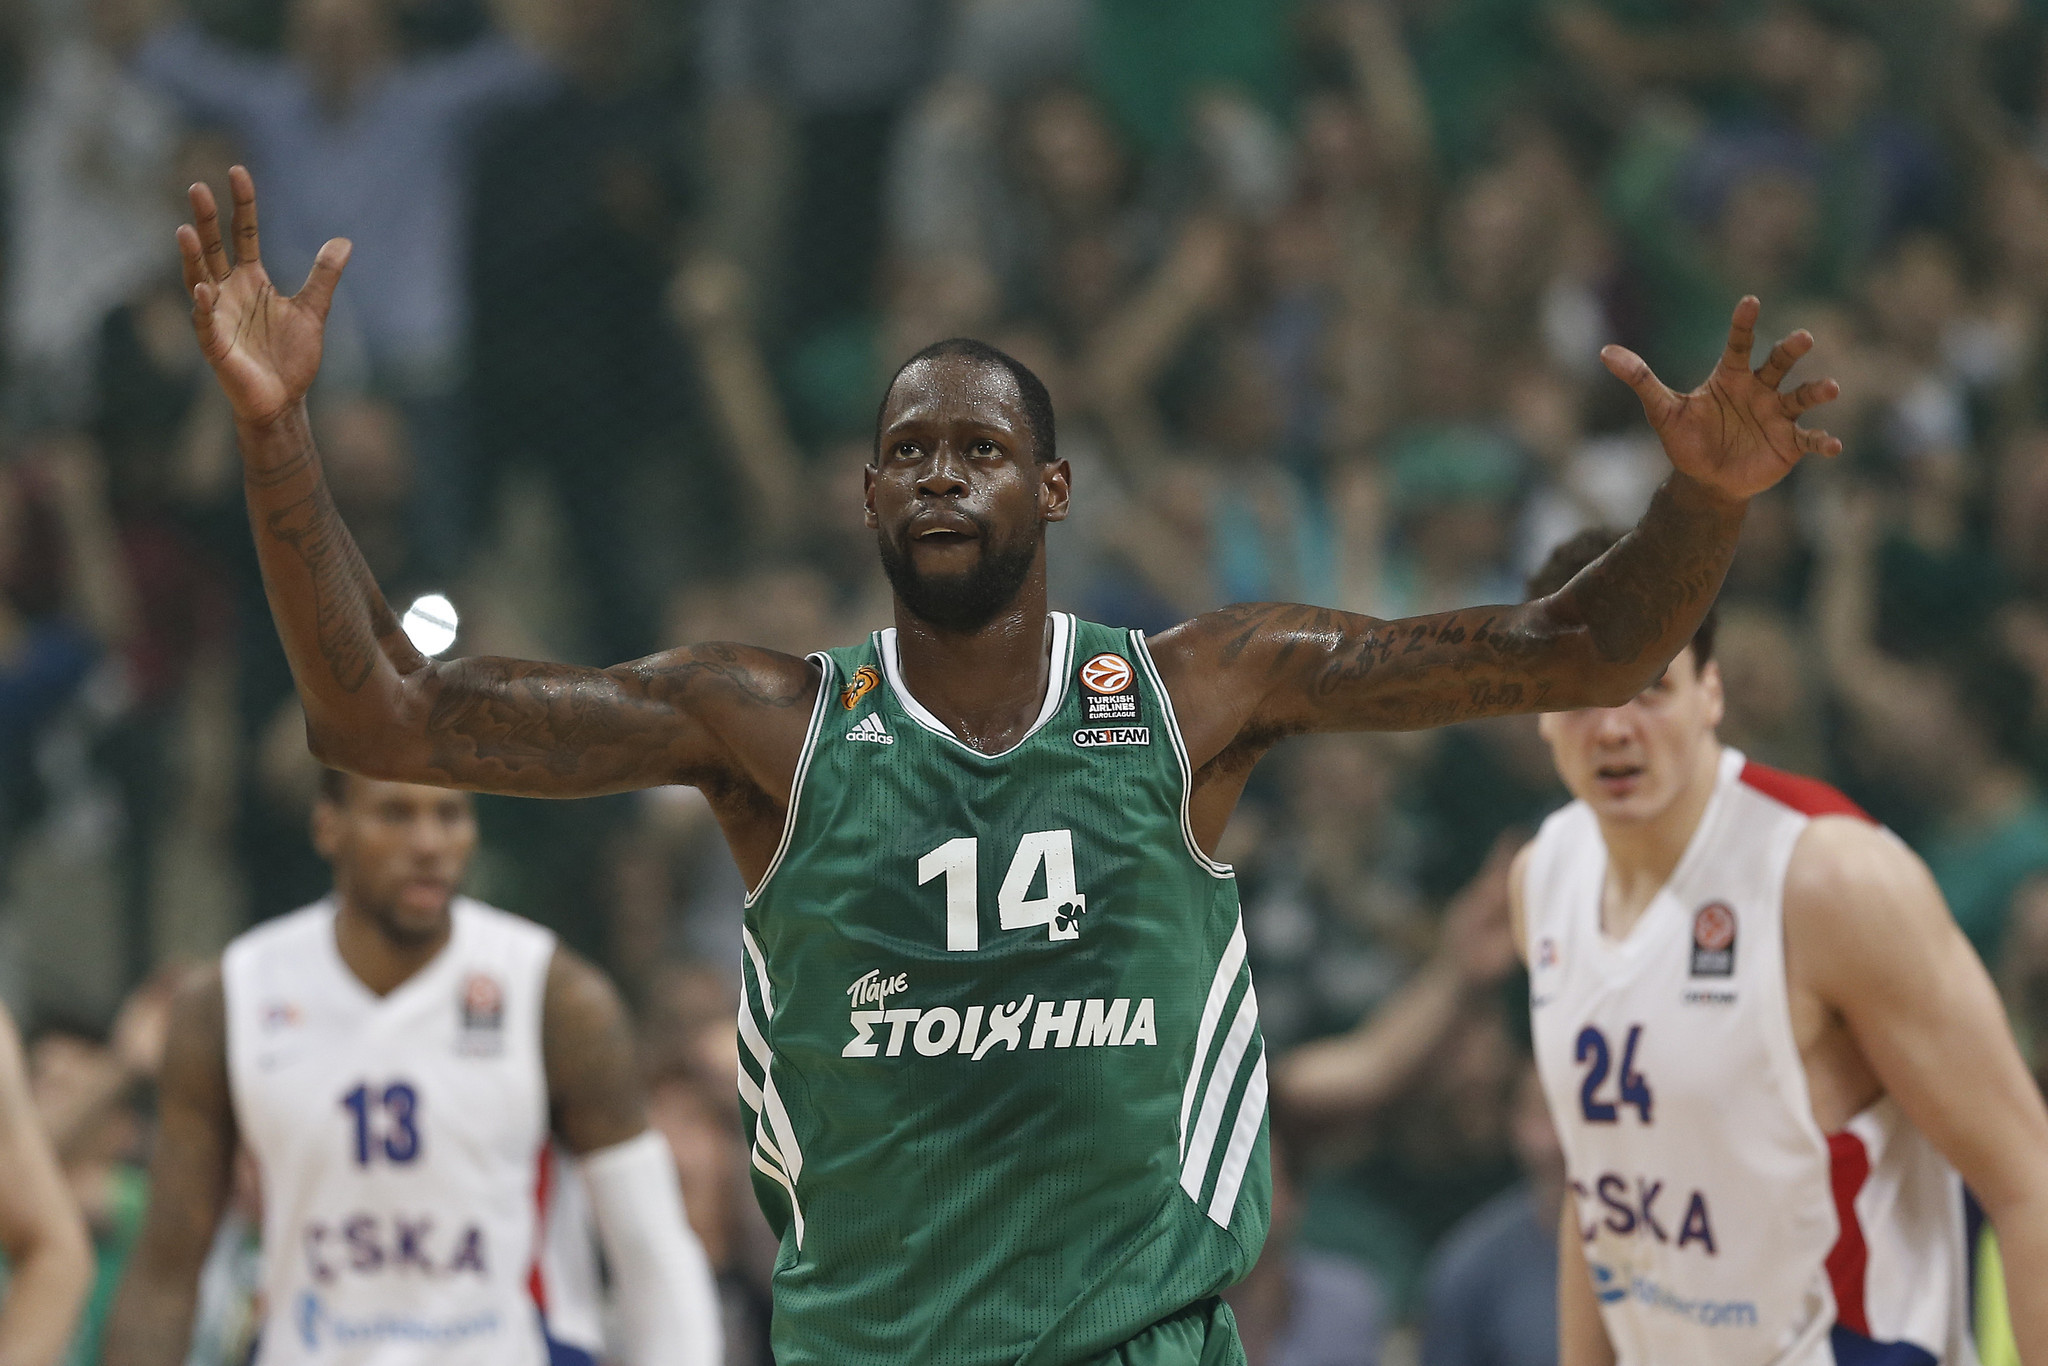 james Gist,Pao,Panathinaikos,euroliga,euroleague,heba,grecia